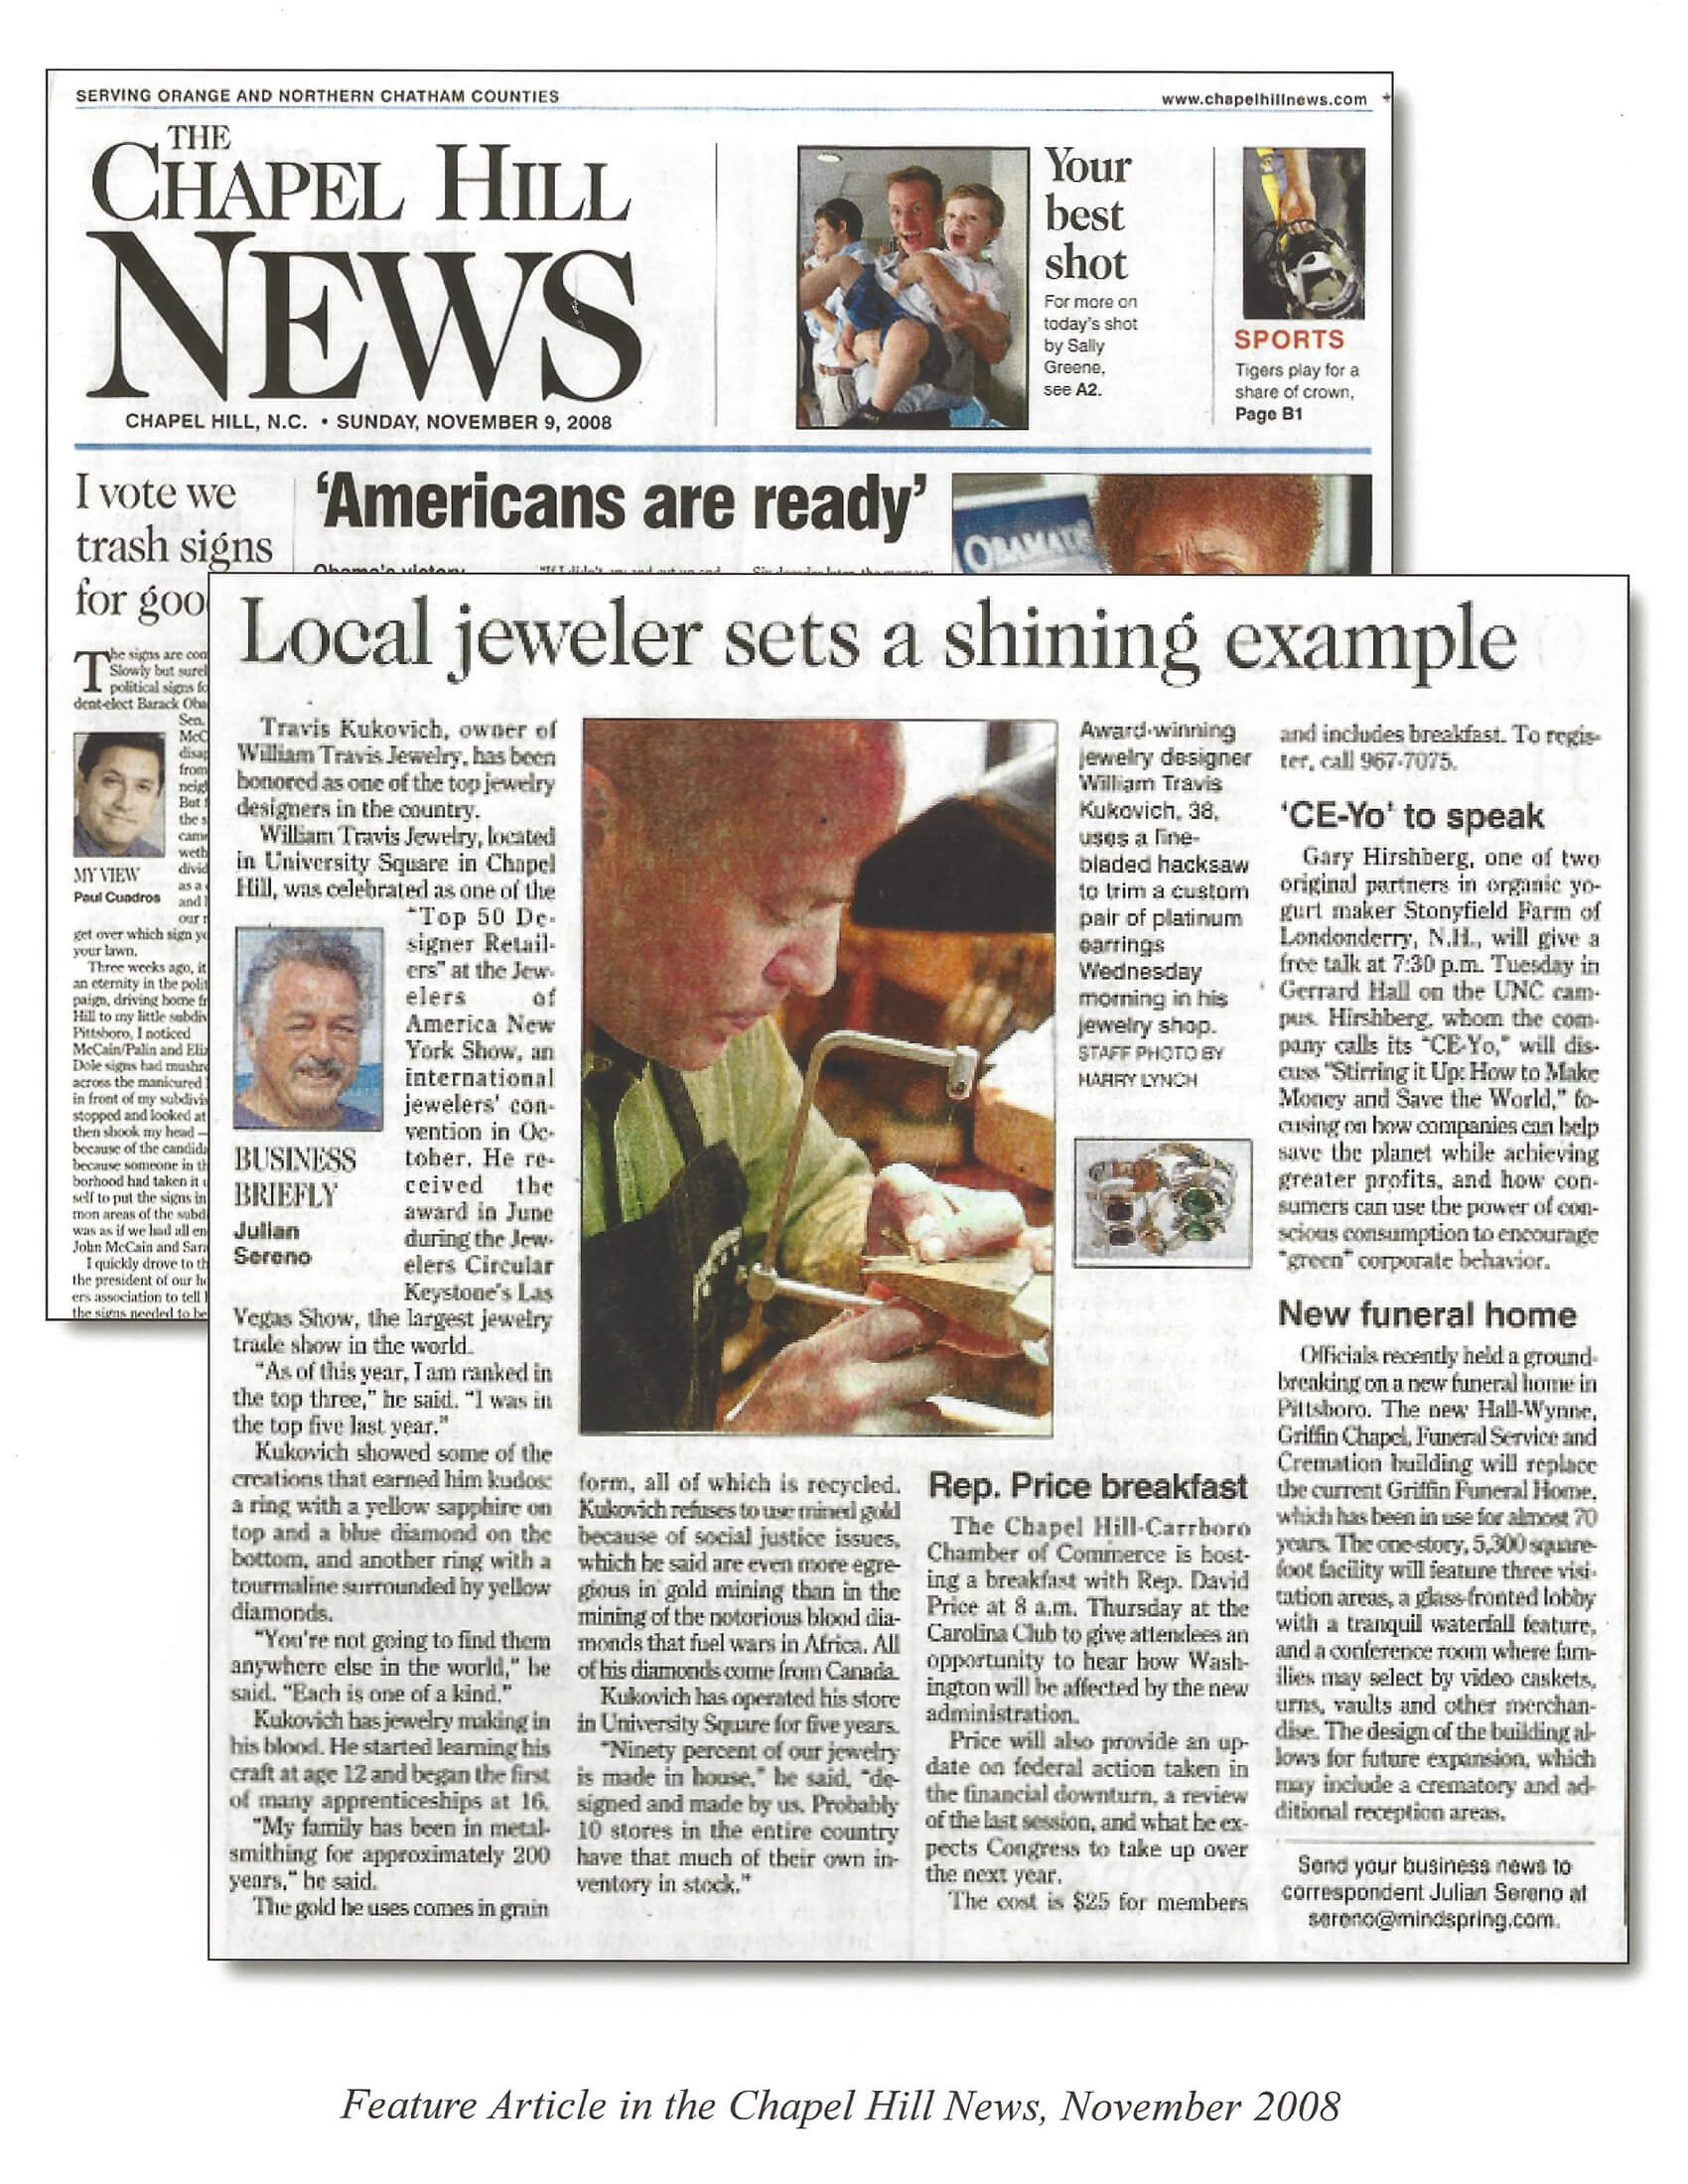 The Chapel Hill News November 2008